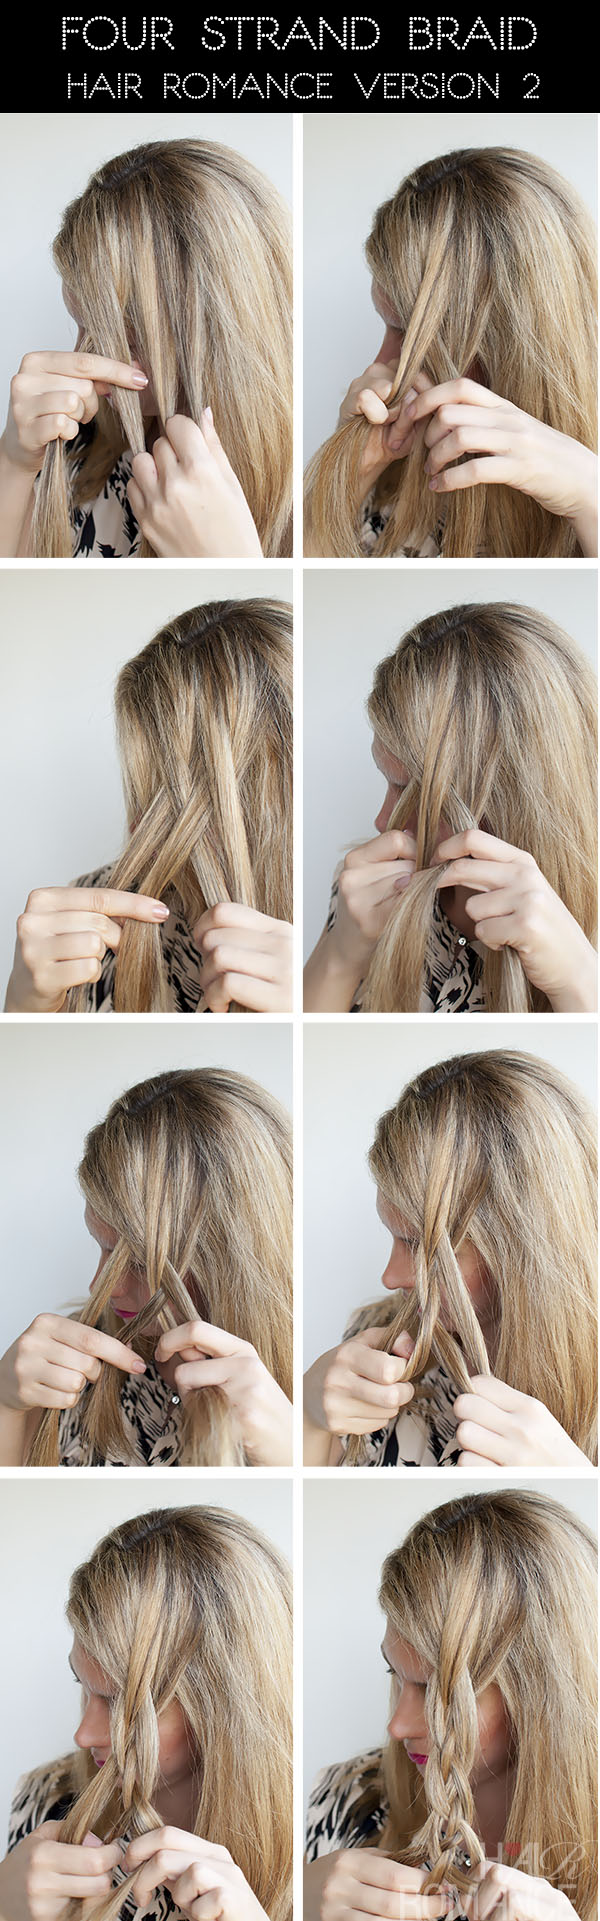 hairstyle tutorial four strand braids and slide up